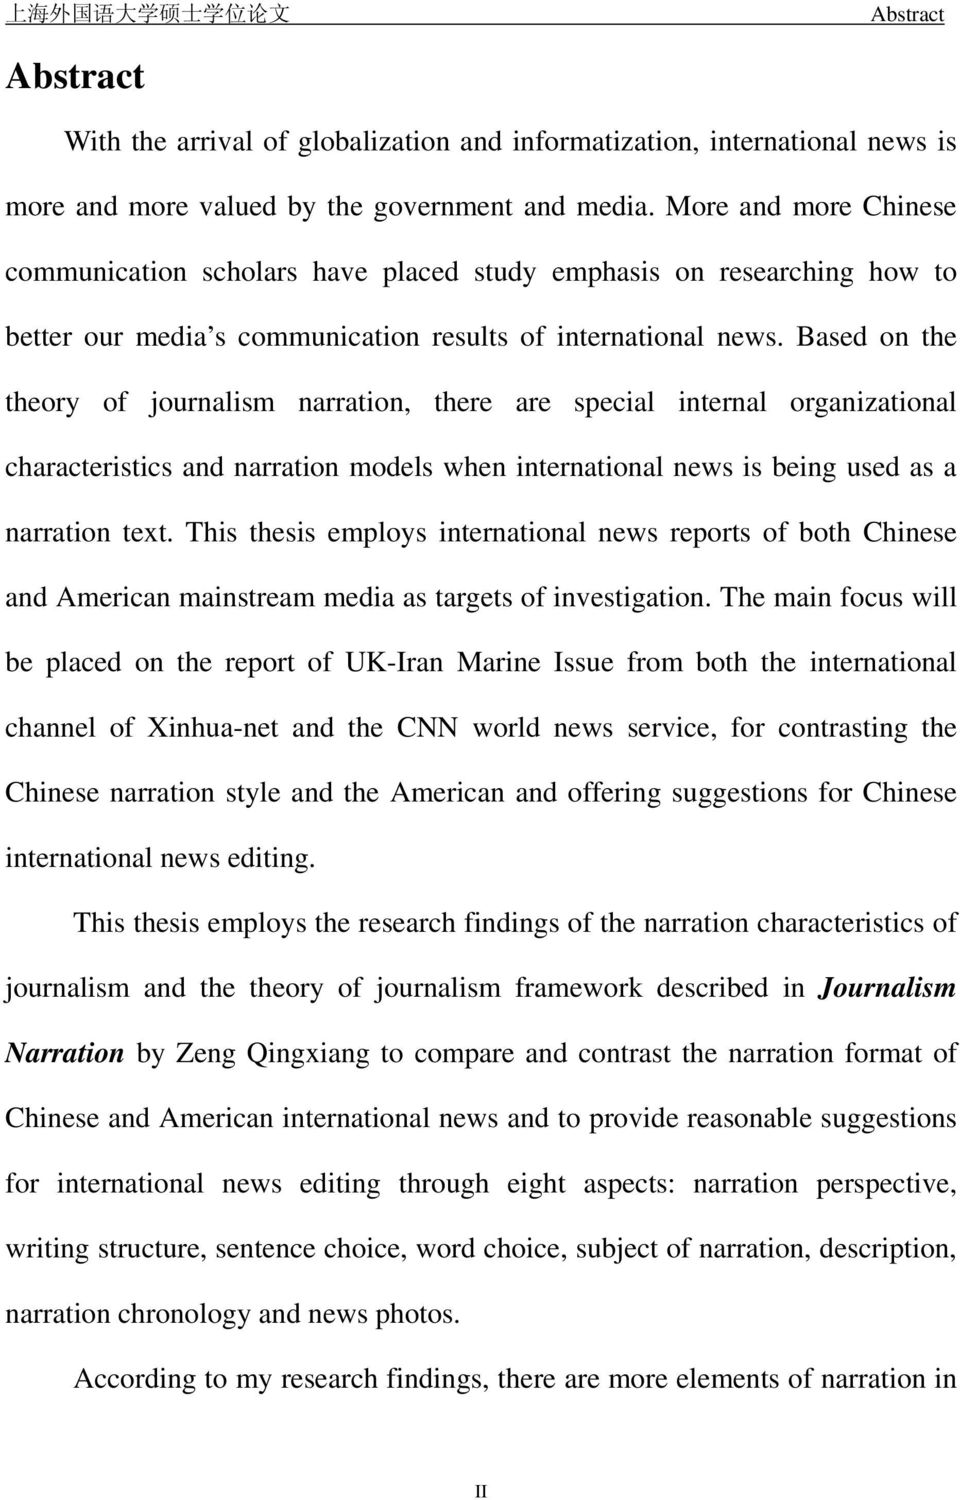 Based on the theory of journalism narration, there are special internal organizational characteristics and narration models when international news is being used as a narration text.